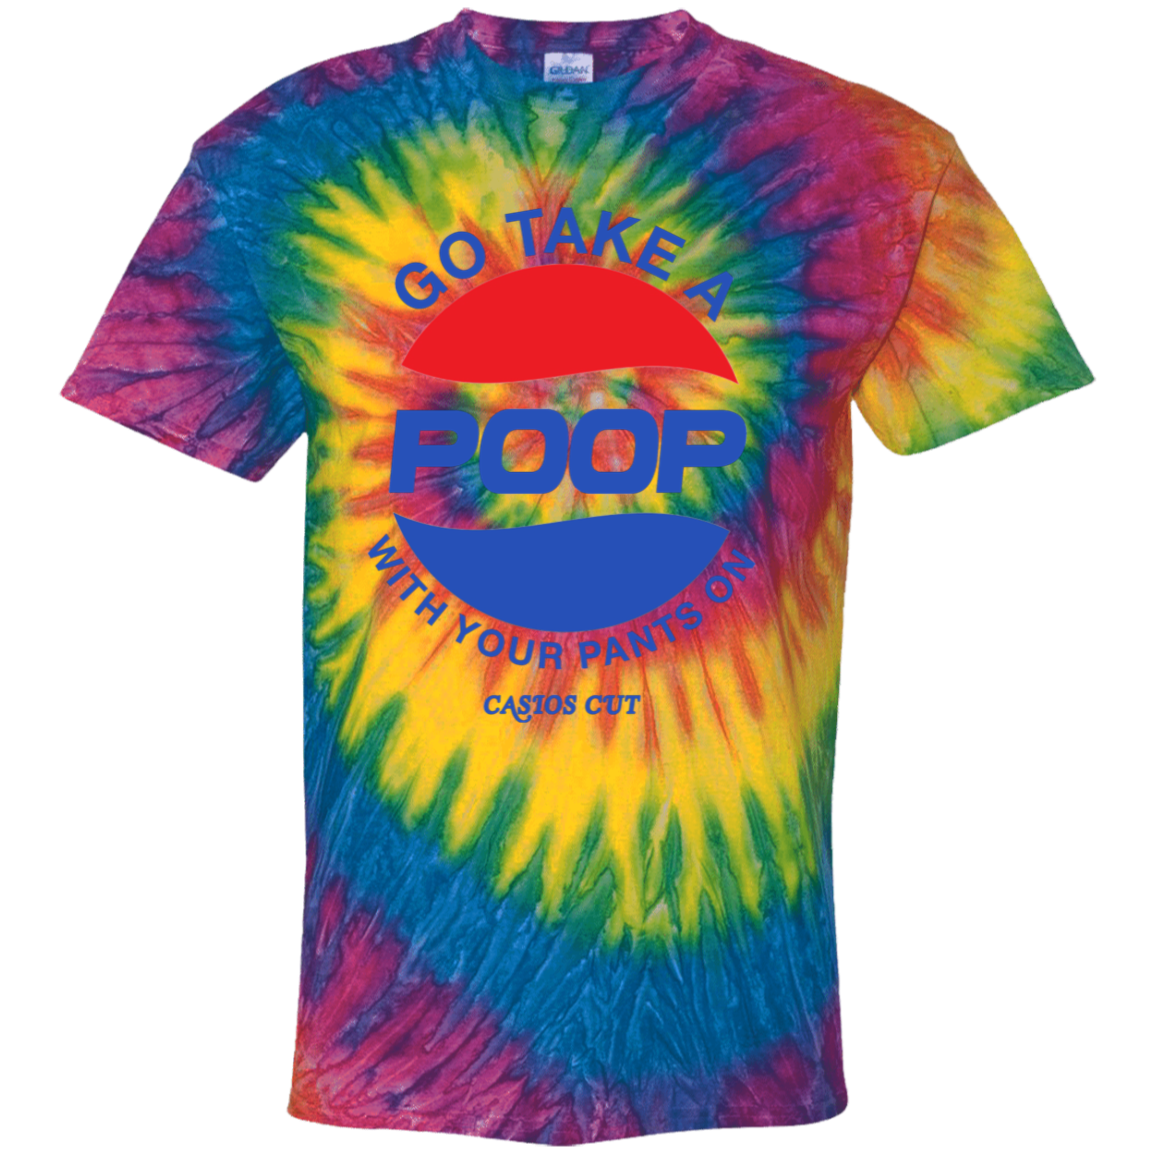 POOP 100% Cotton Tie Dye T-Shirt